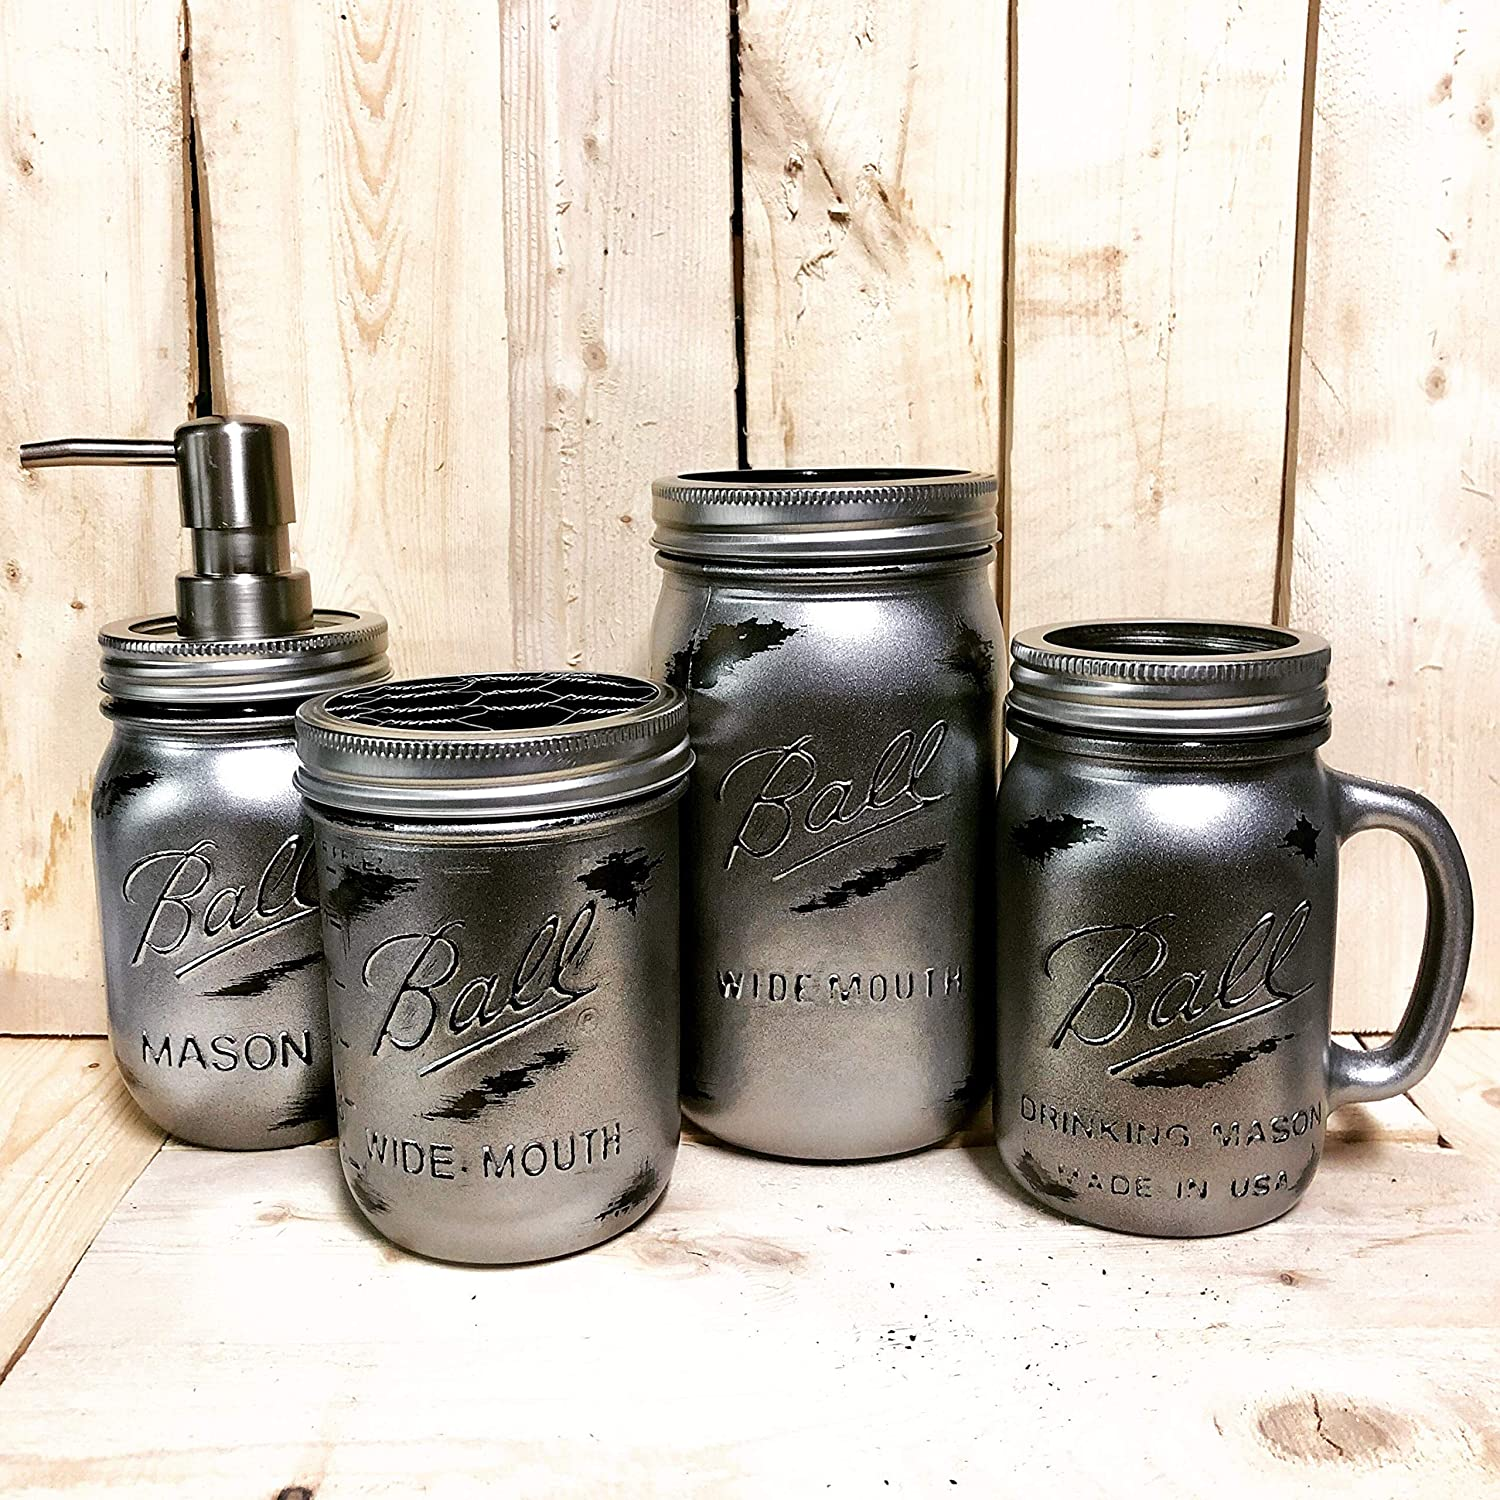 Amazon Com Rustic Industrial Silver Mason Jar Bathroom Accessories Set Soap Dispenser Toothbrush Holder Drinking Glass Mens Bath Storage Organization Modern Farmhouse Bathroom Decor Handmade